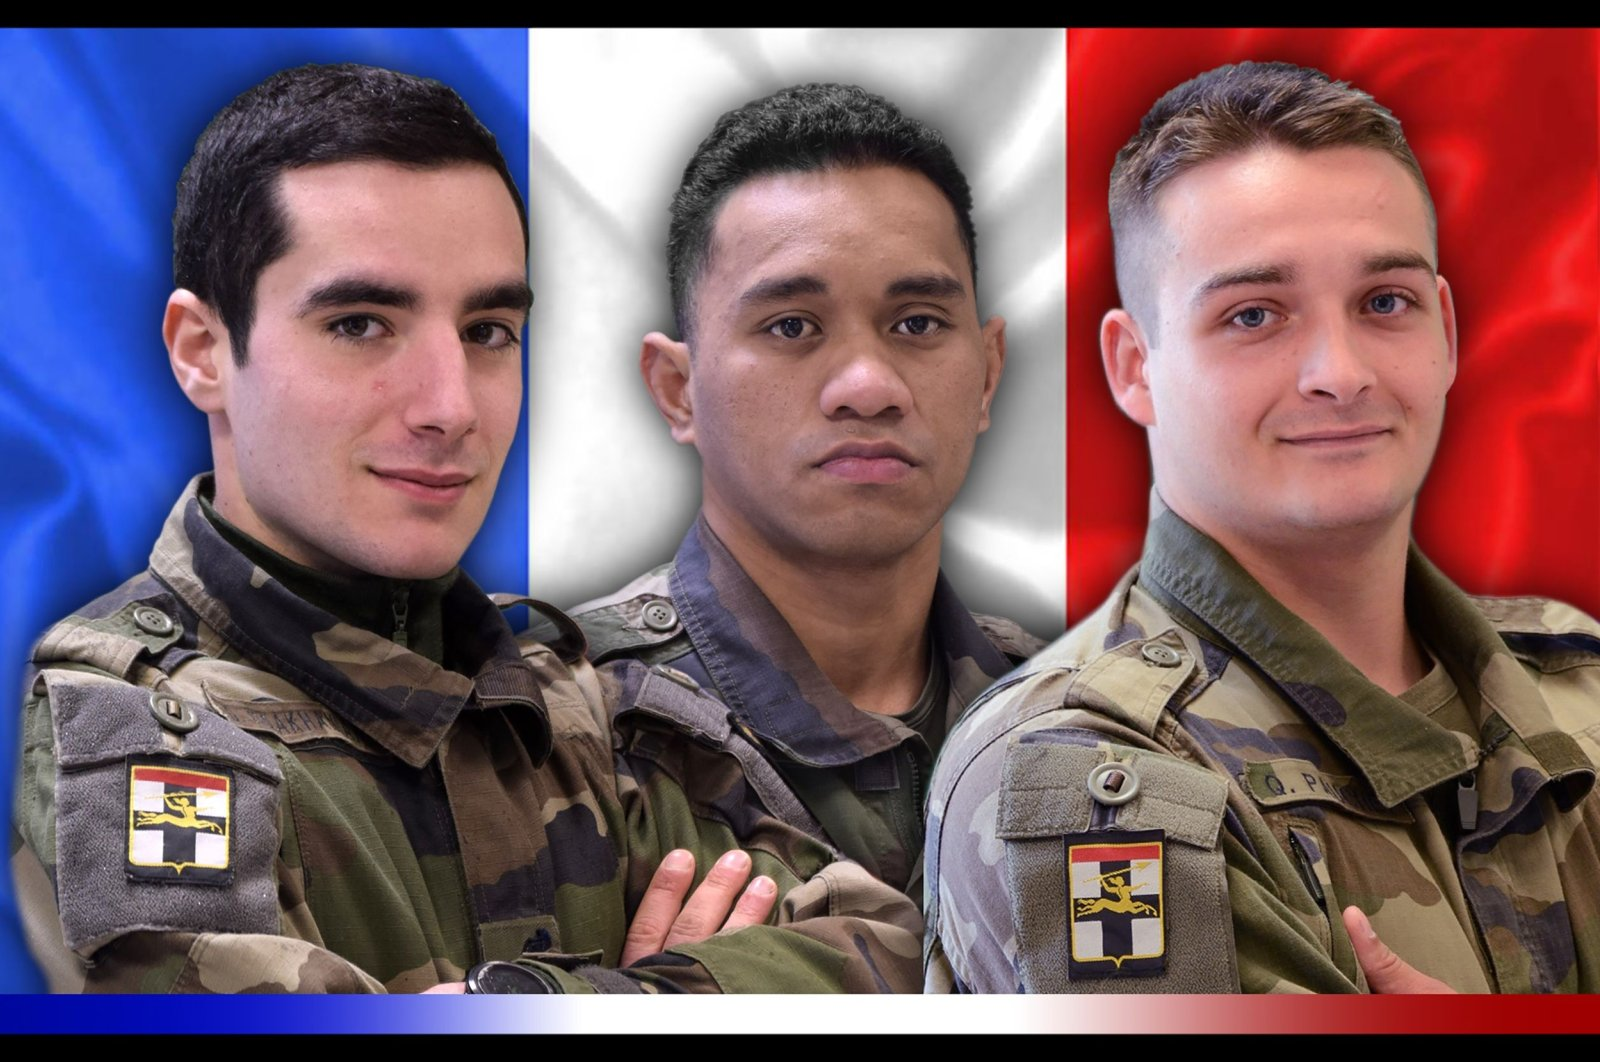 French soldiers (from L) Dorian Issakhanian, Tanerii Mauri and Quentin Pauchet were killed during an operation in the Hombori region, in Mali, Dec. 28, 2020. (AFP Photo)